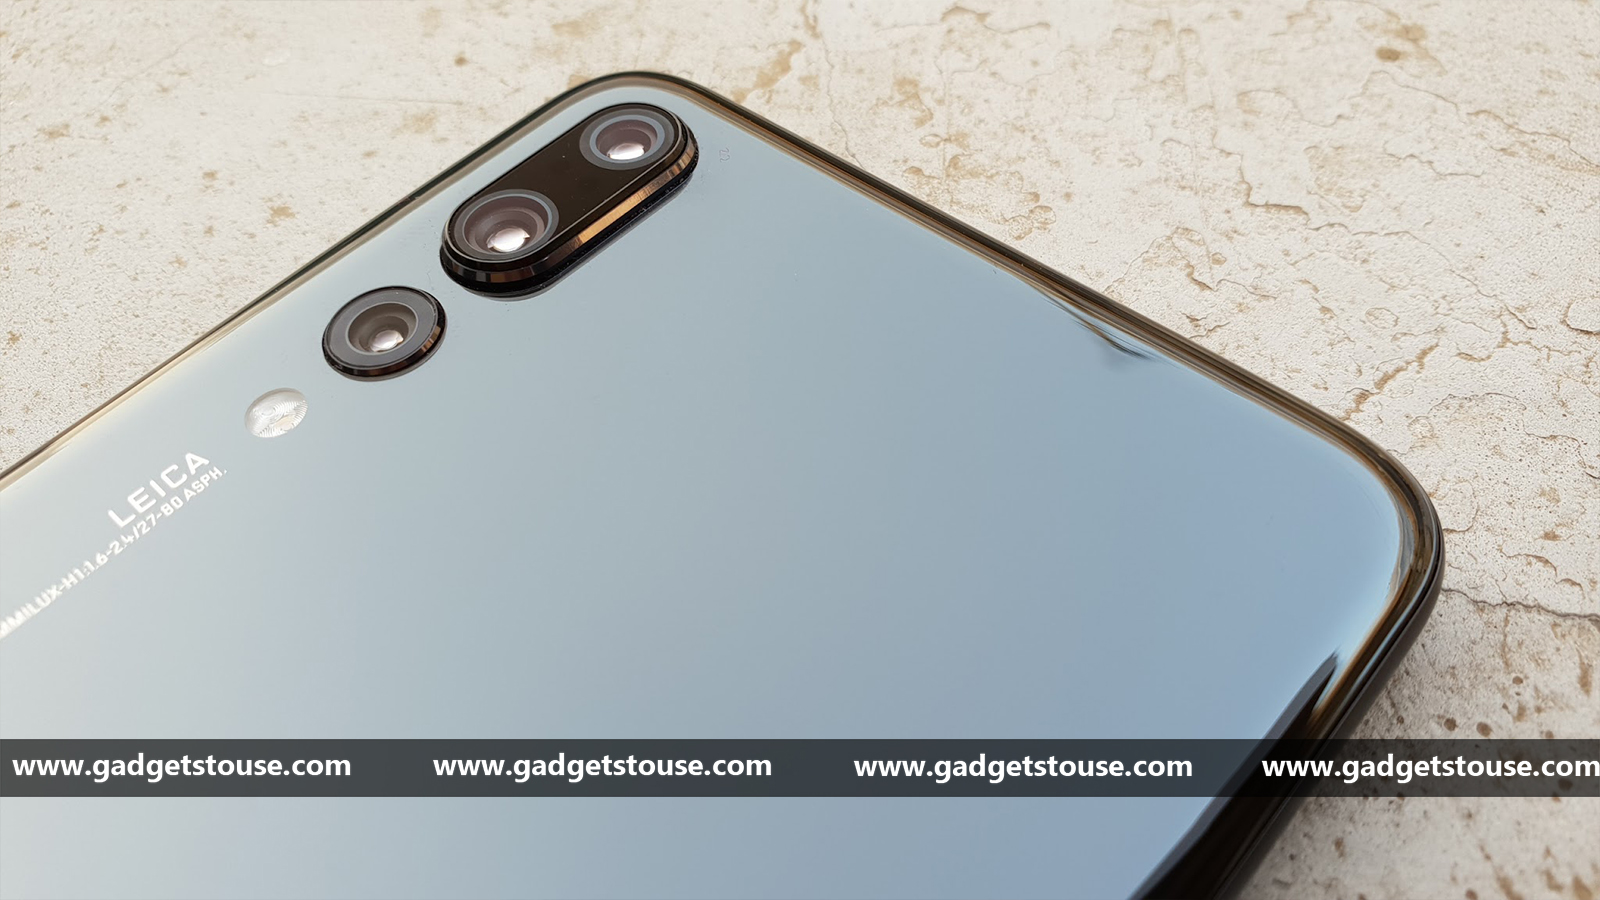 Huawei P20 Pro  - 9 - Huawei P20 Pro Vs Samsung Galaxy S9 Plus: Specs and features comparison